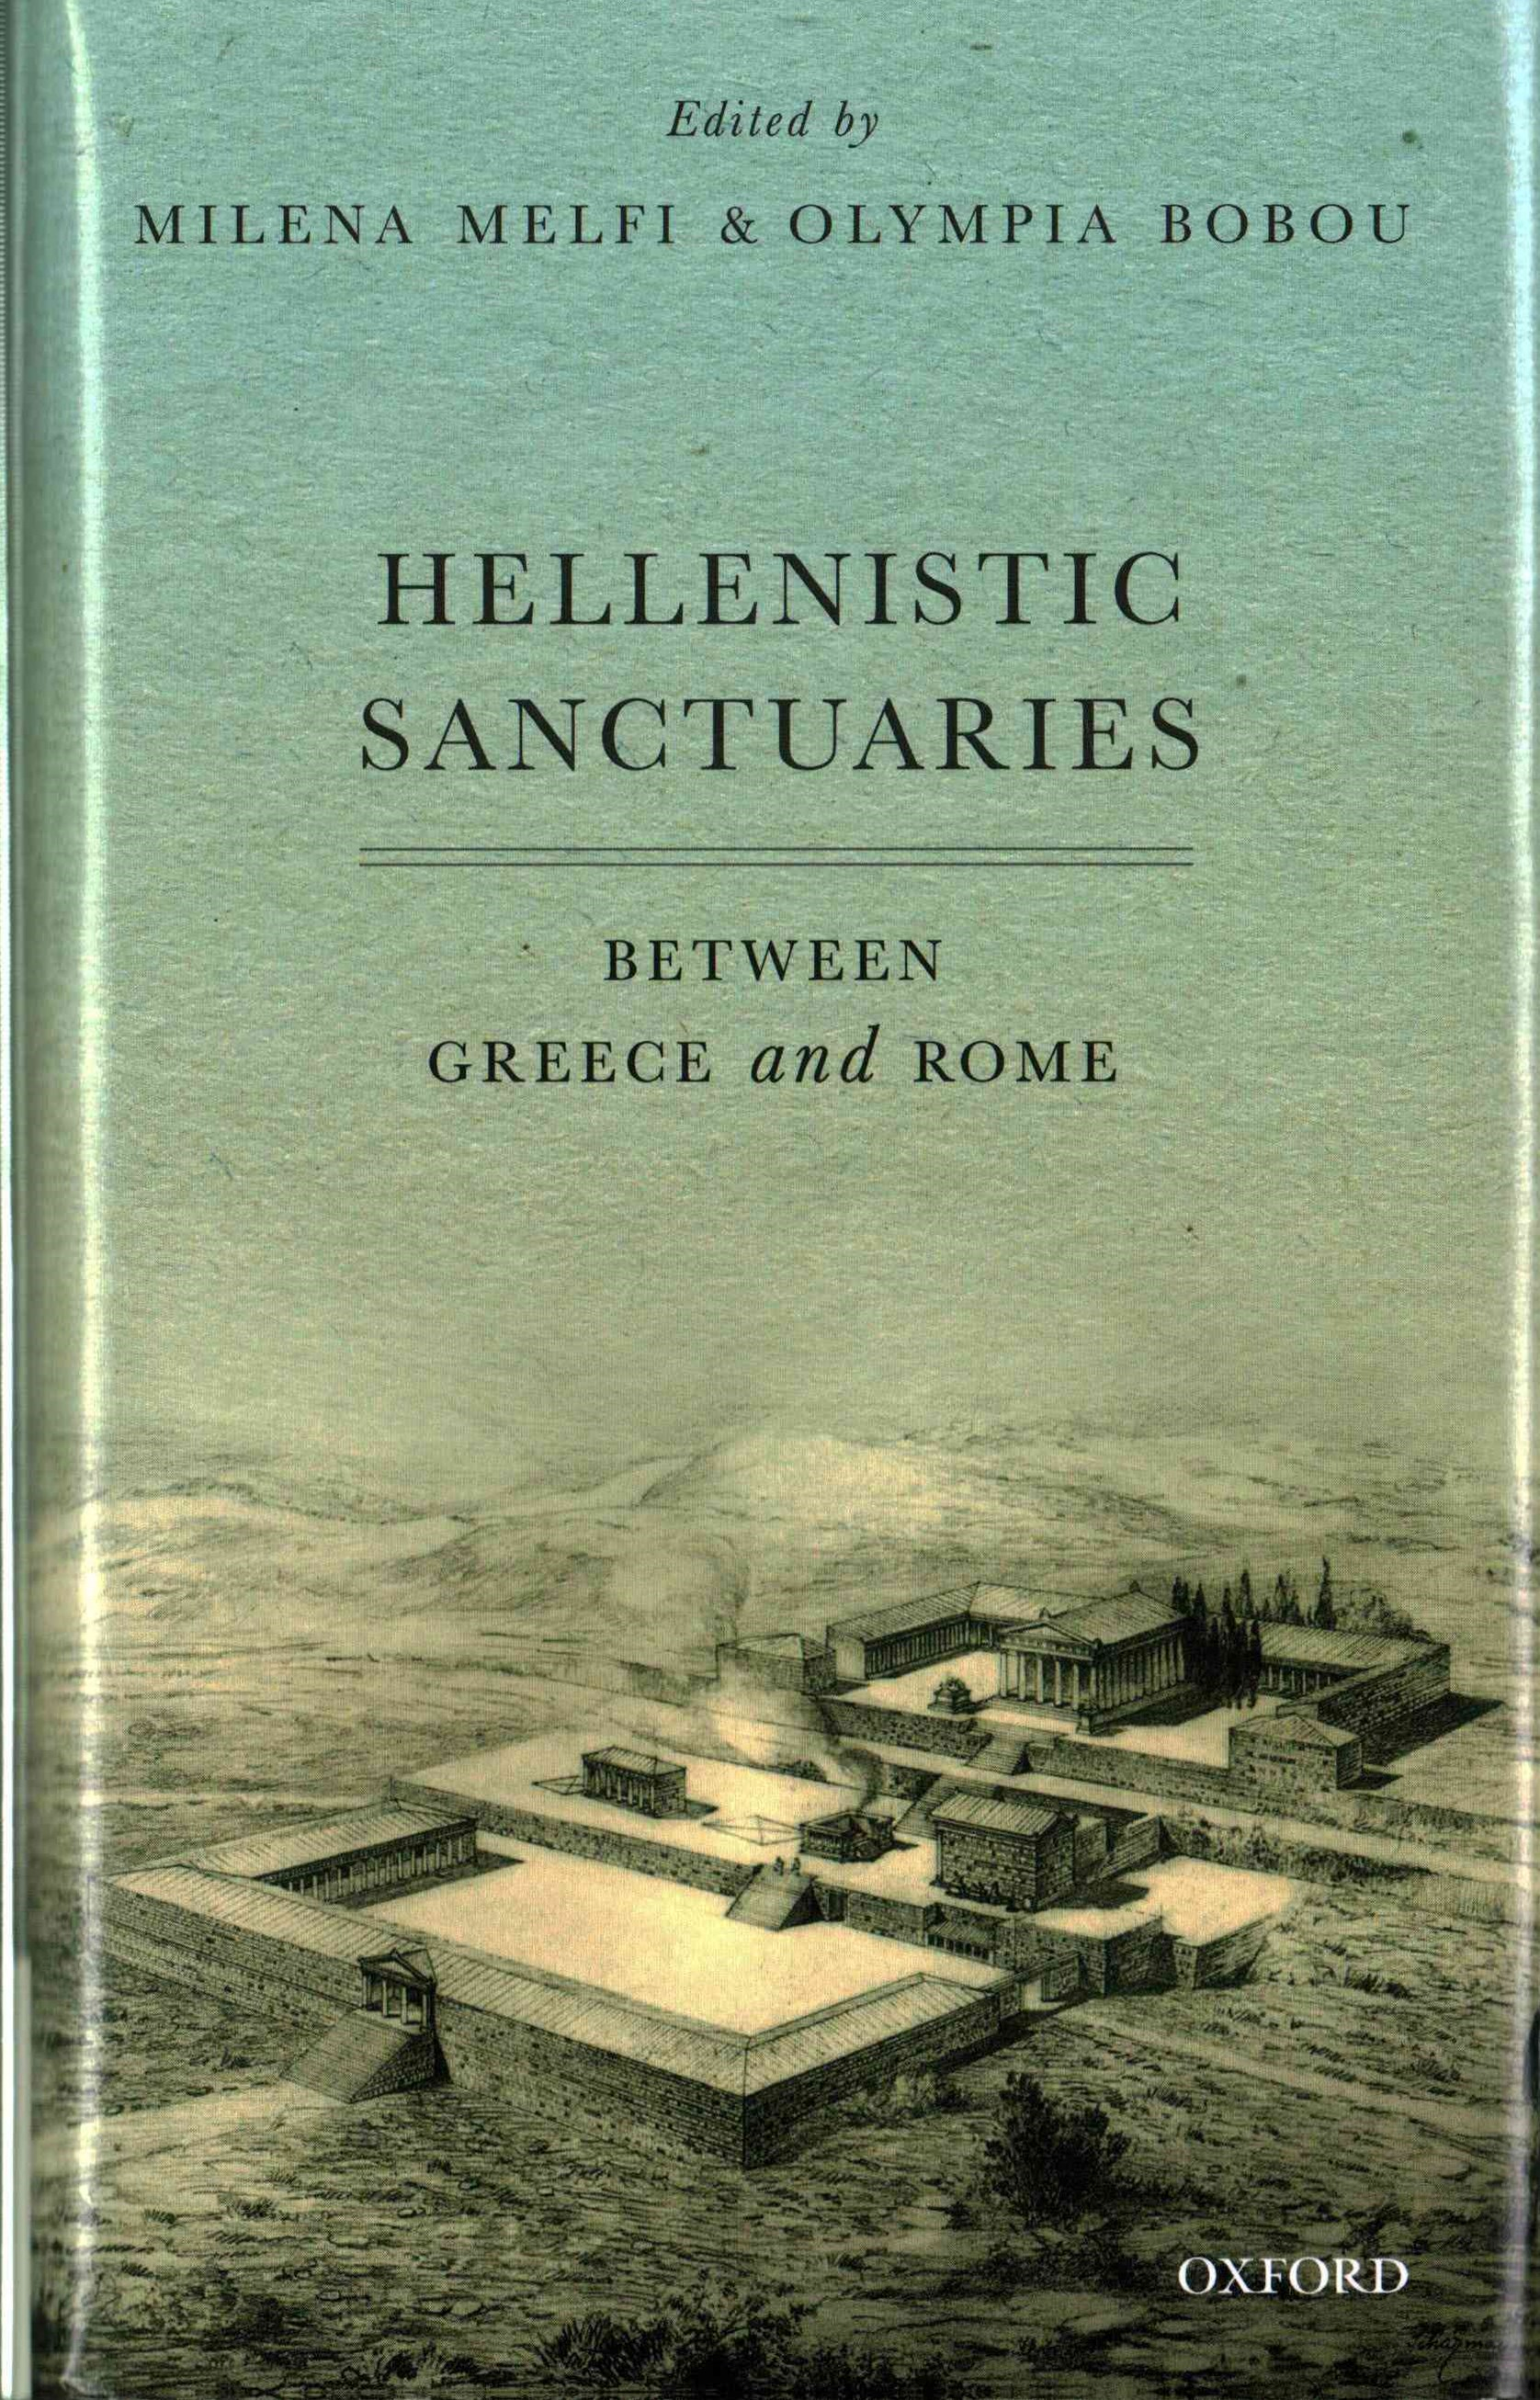 Hellenistic Sanctuaries Between Greece and Rome